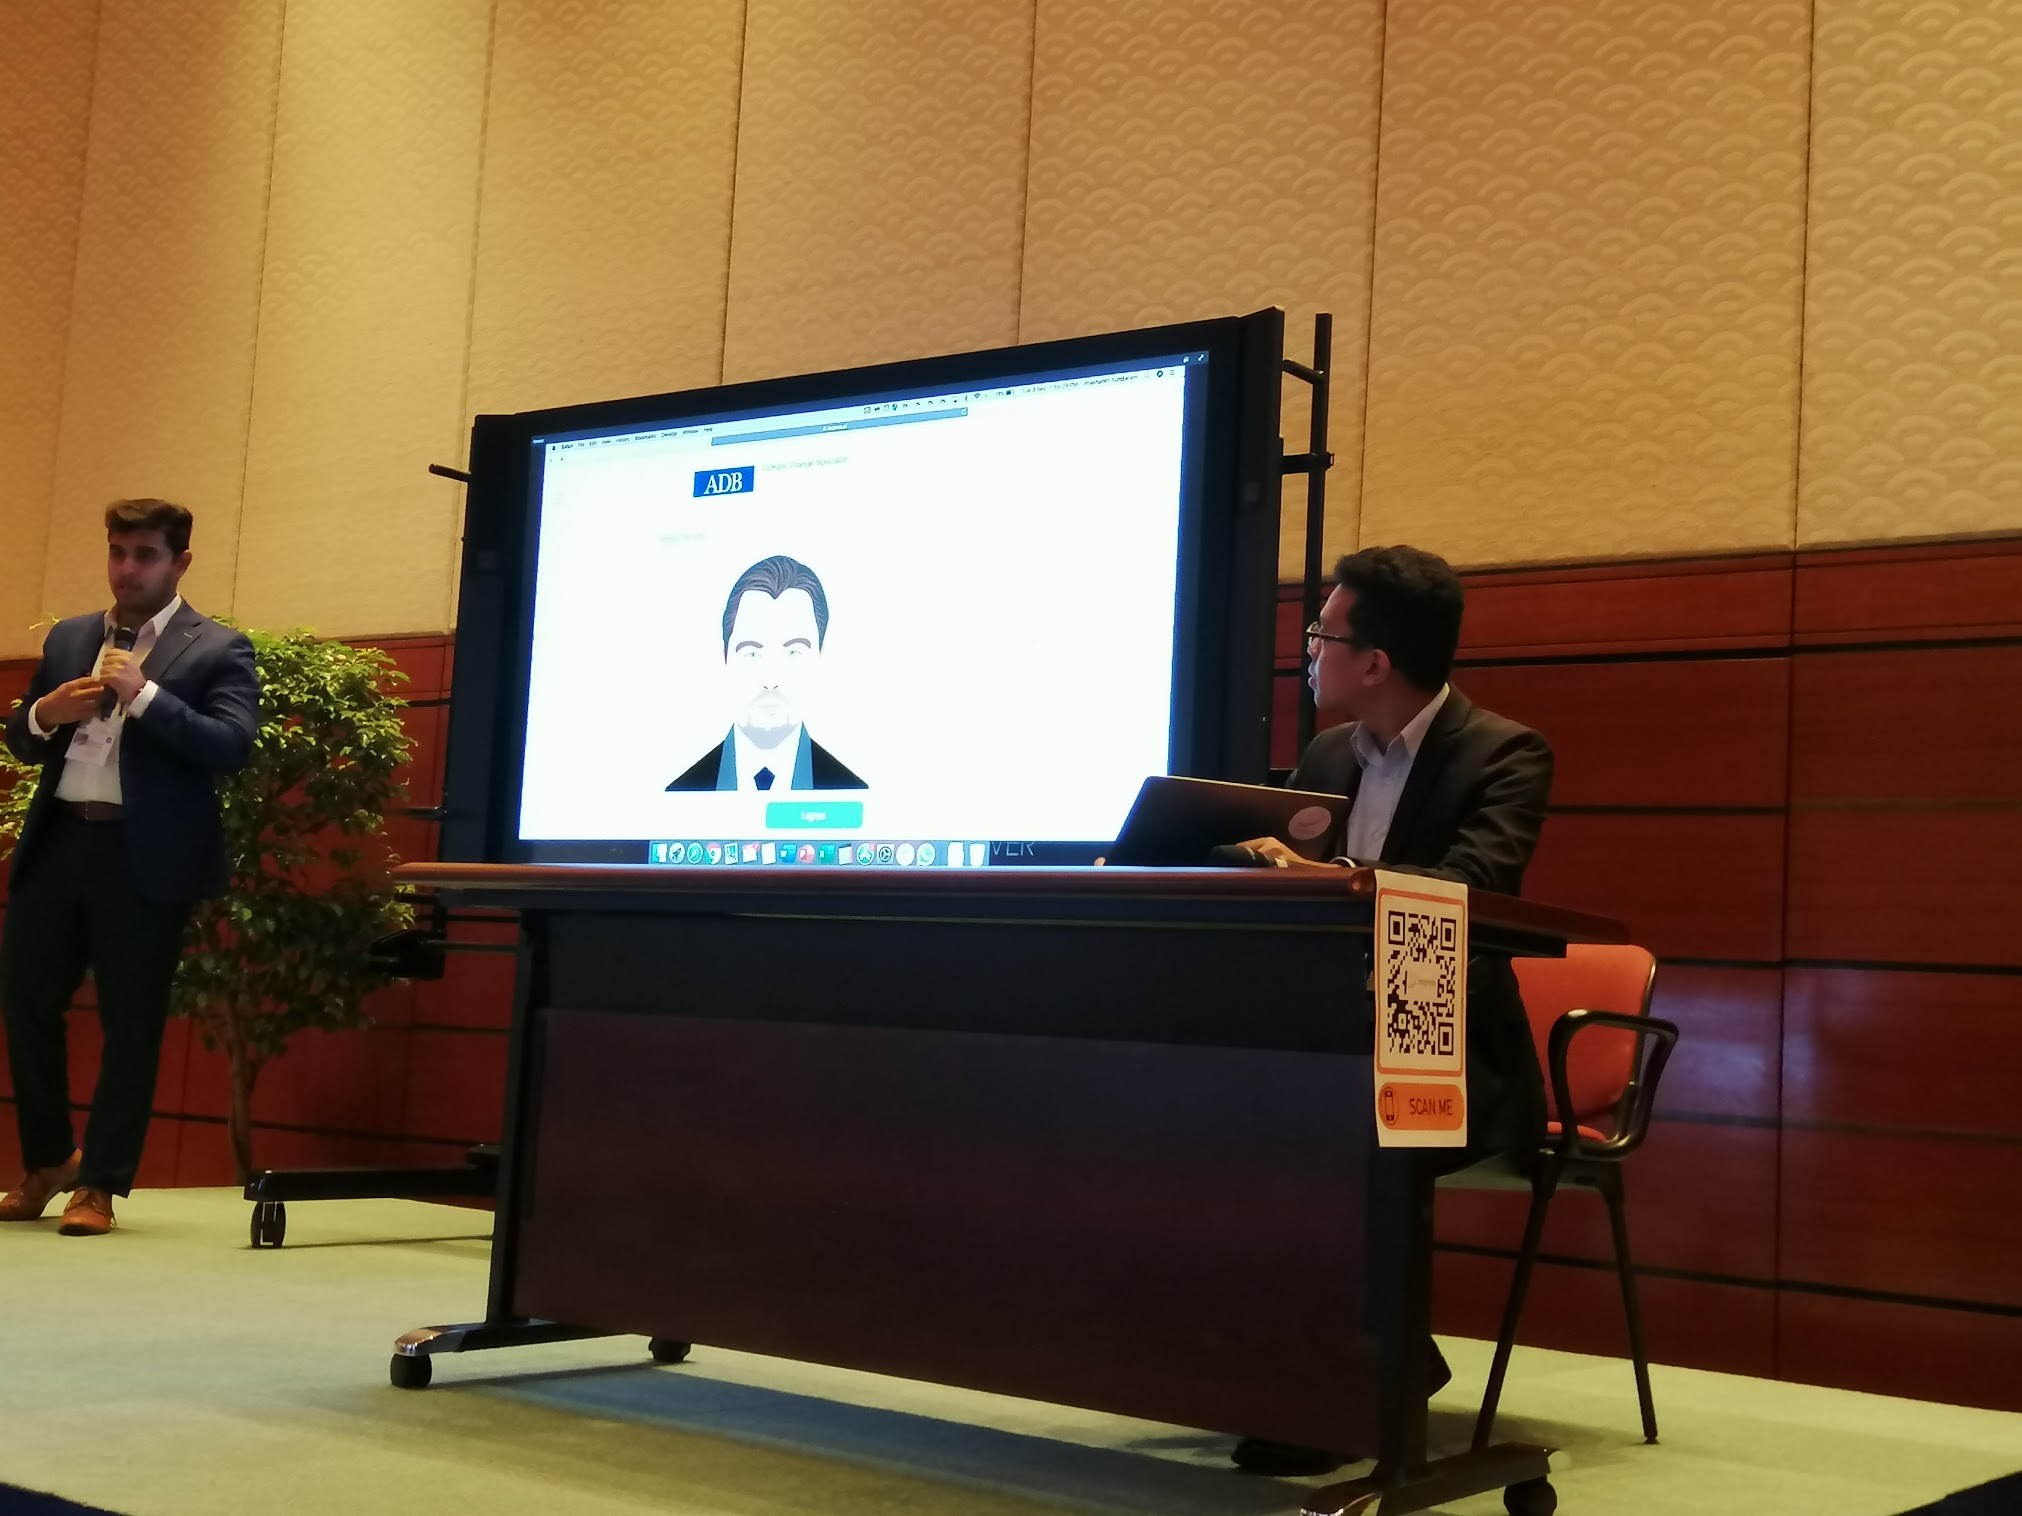 1:55 p.m. - Impress.ai provides a live demo of their chatbot for ADB and showcases its features and capabilities.